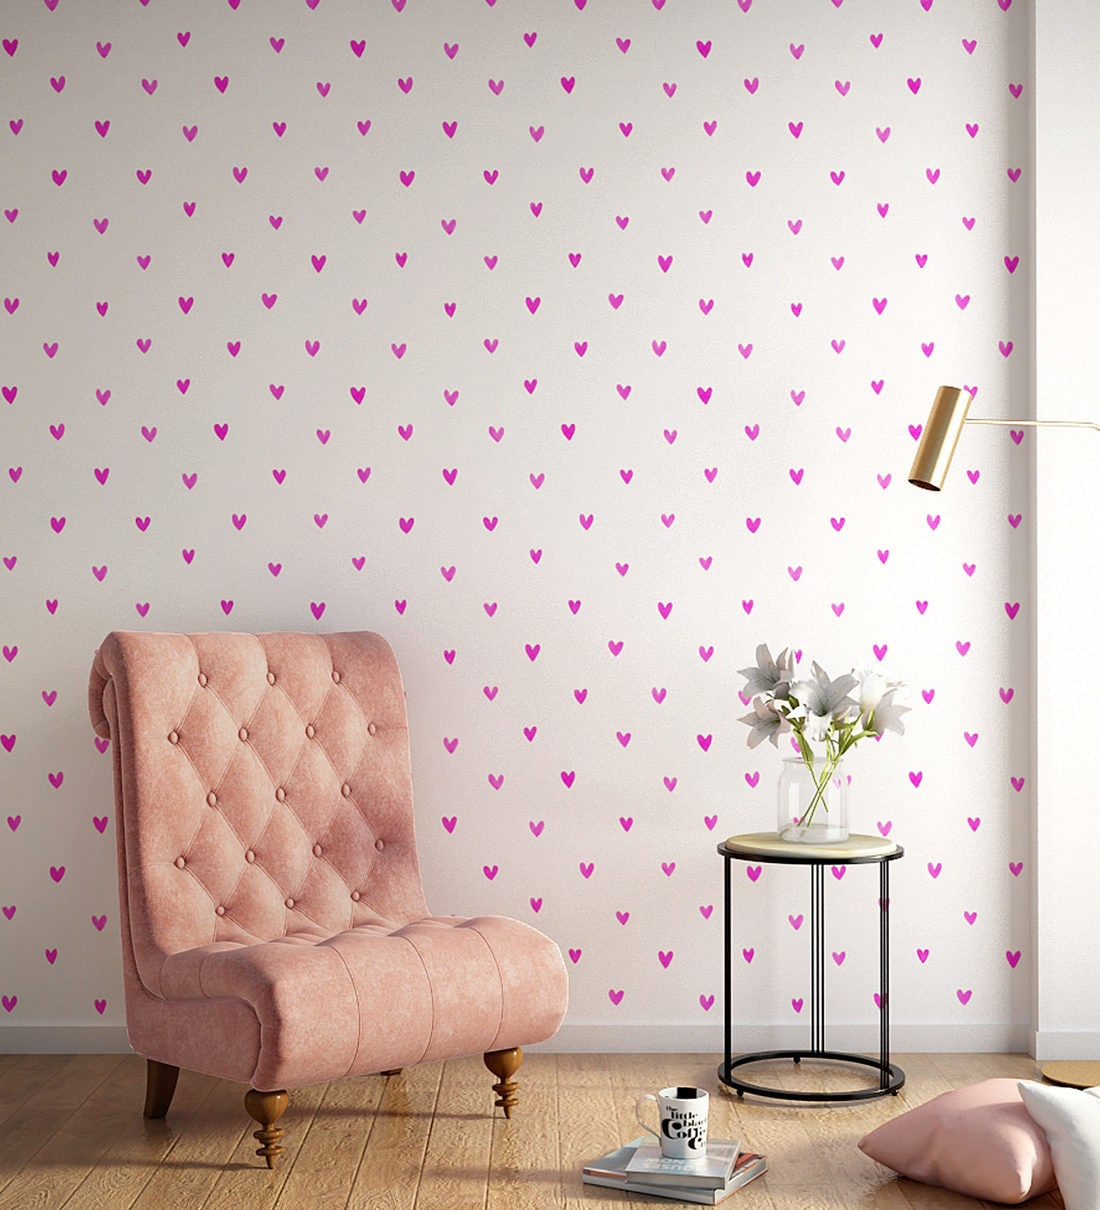 buy white pink happy hearts wallpaper nilaya wall coverings by asian paints online pattern textures wallpapers furnishings home decor pepperfry product white pink happy hearts wallpaper nilaya wall coverings